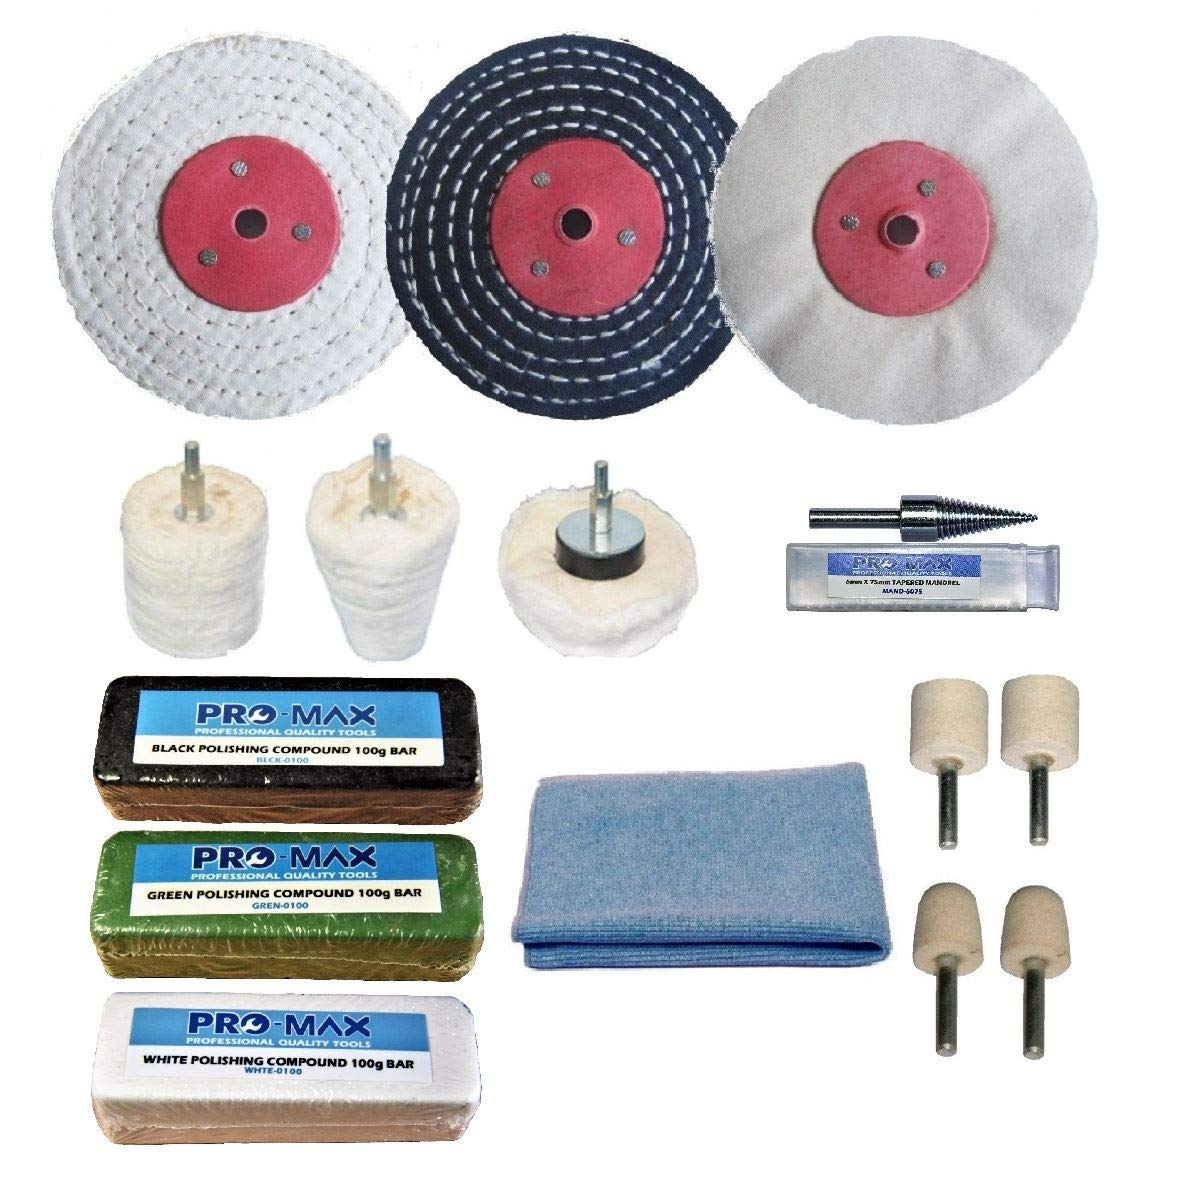 Steel & Stainless Steel Professional Metal Polishing Buffing Kit 3' x 1/2' Pro-Max Quality Tools & Accessories